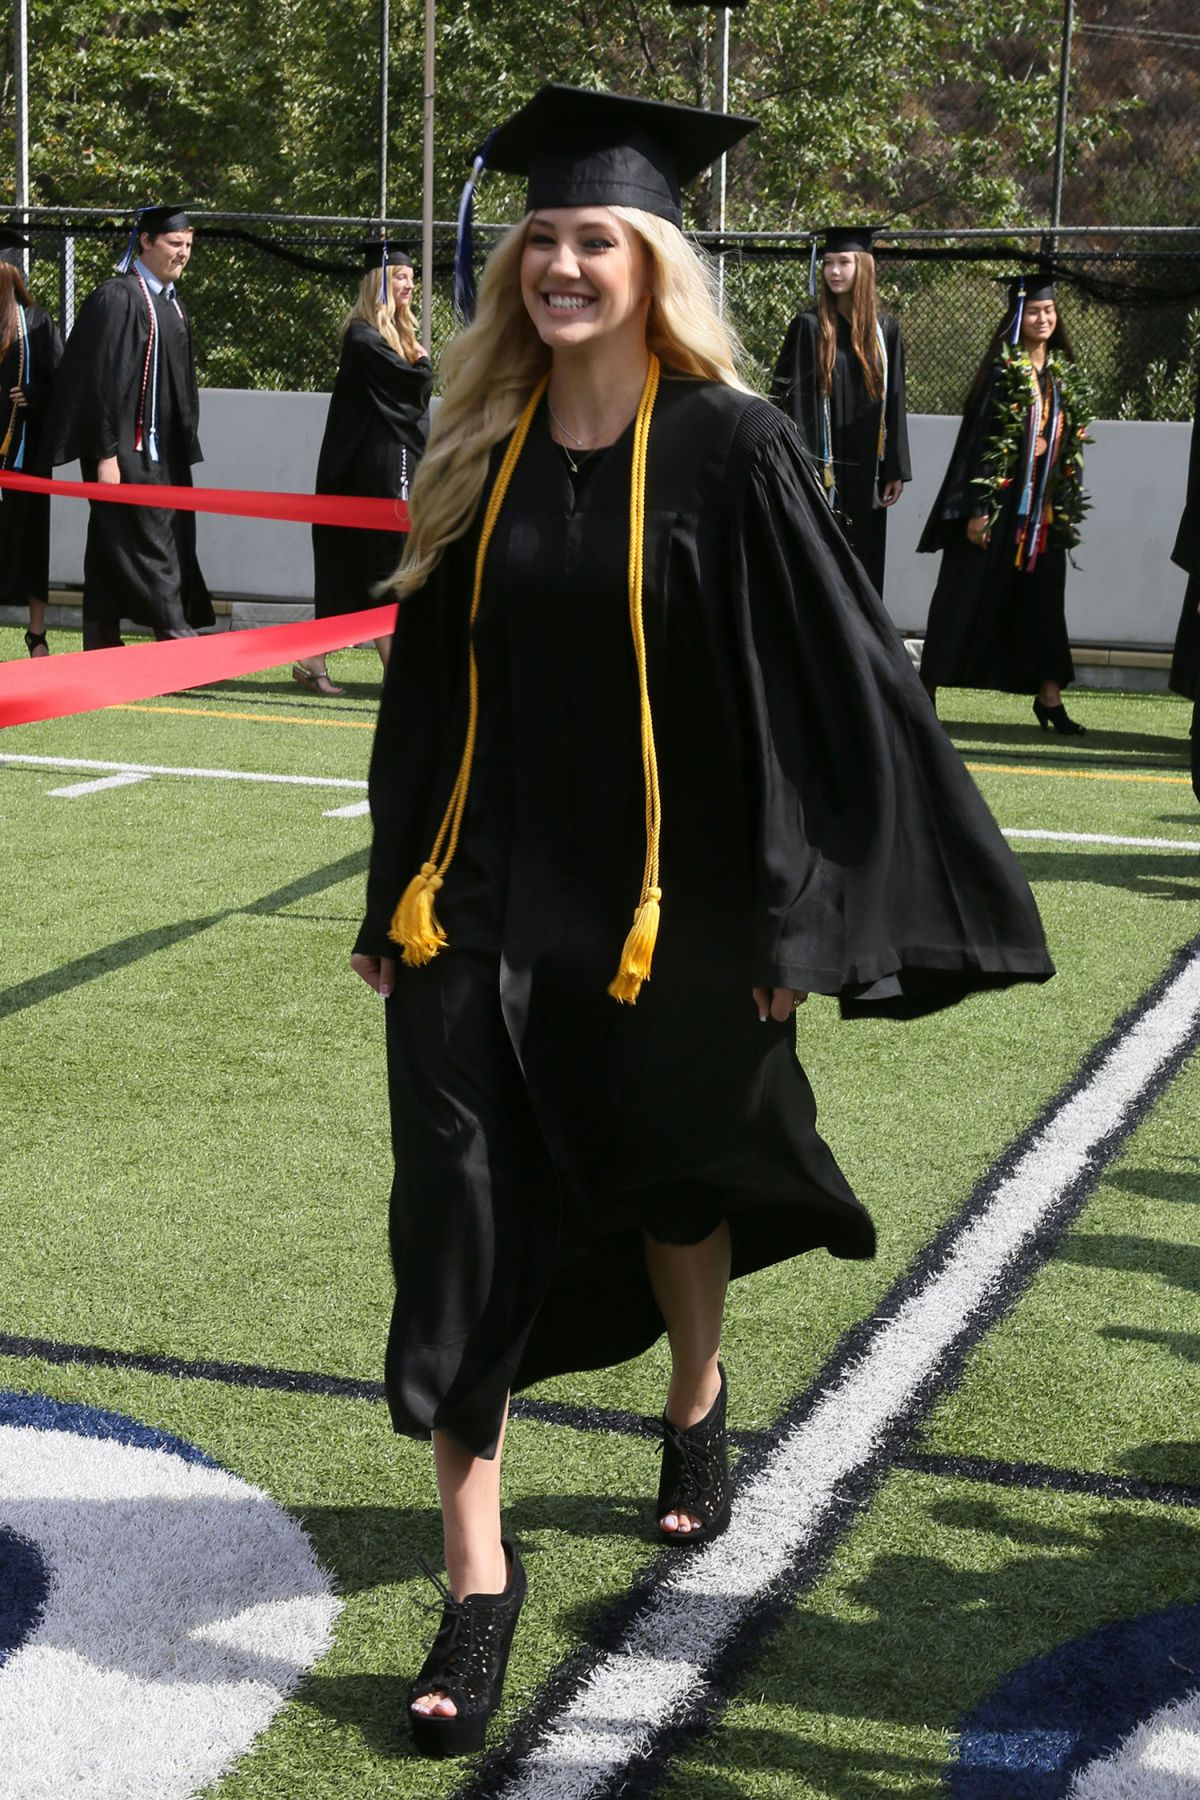 ava sambora graduates from viewpoint high school in